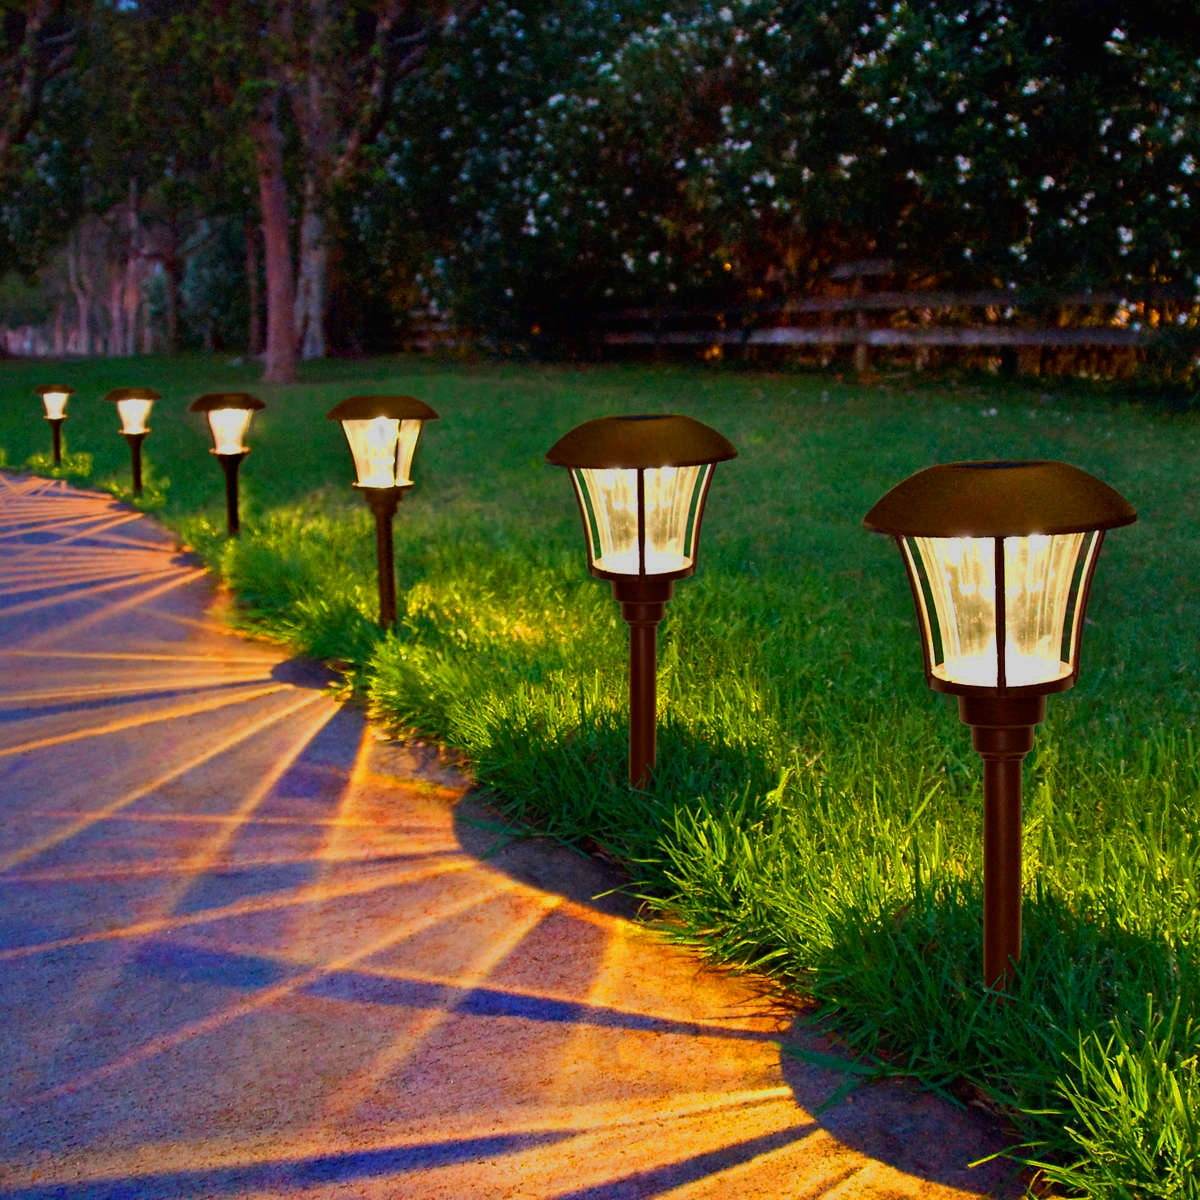 Outdoor Solar Garden Lights Best Solar Garden Lights Review And Buying Guide Our